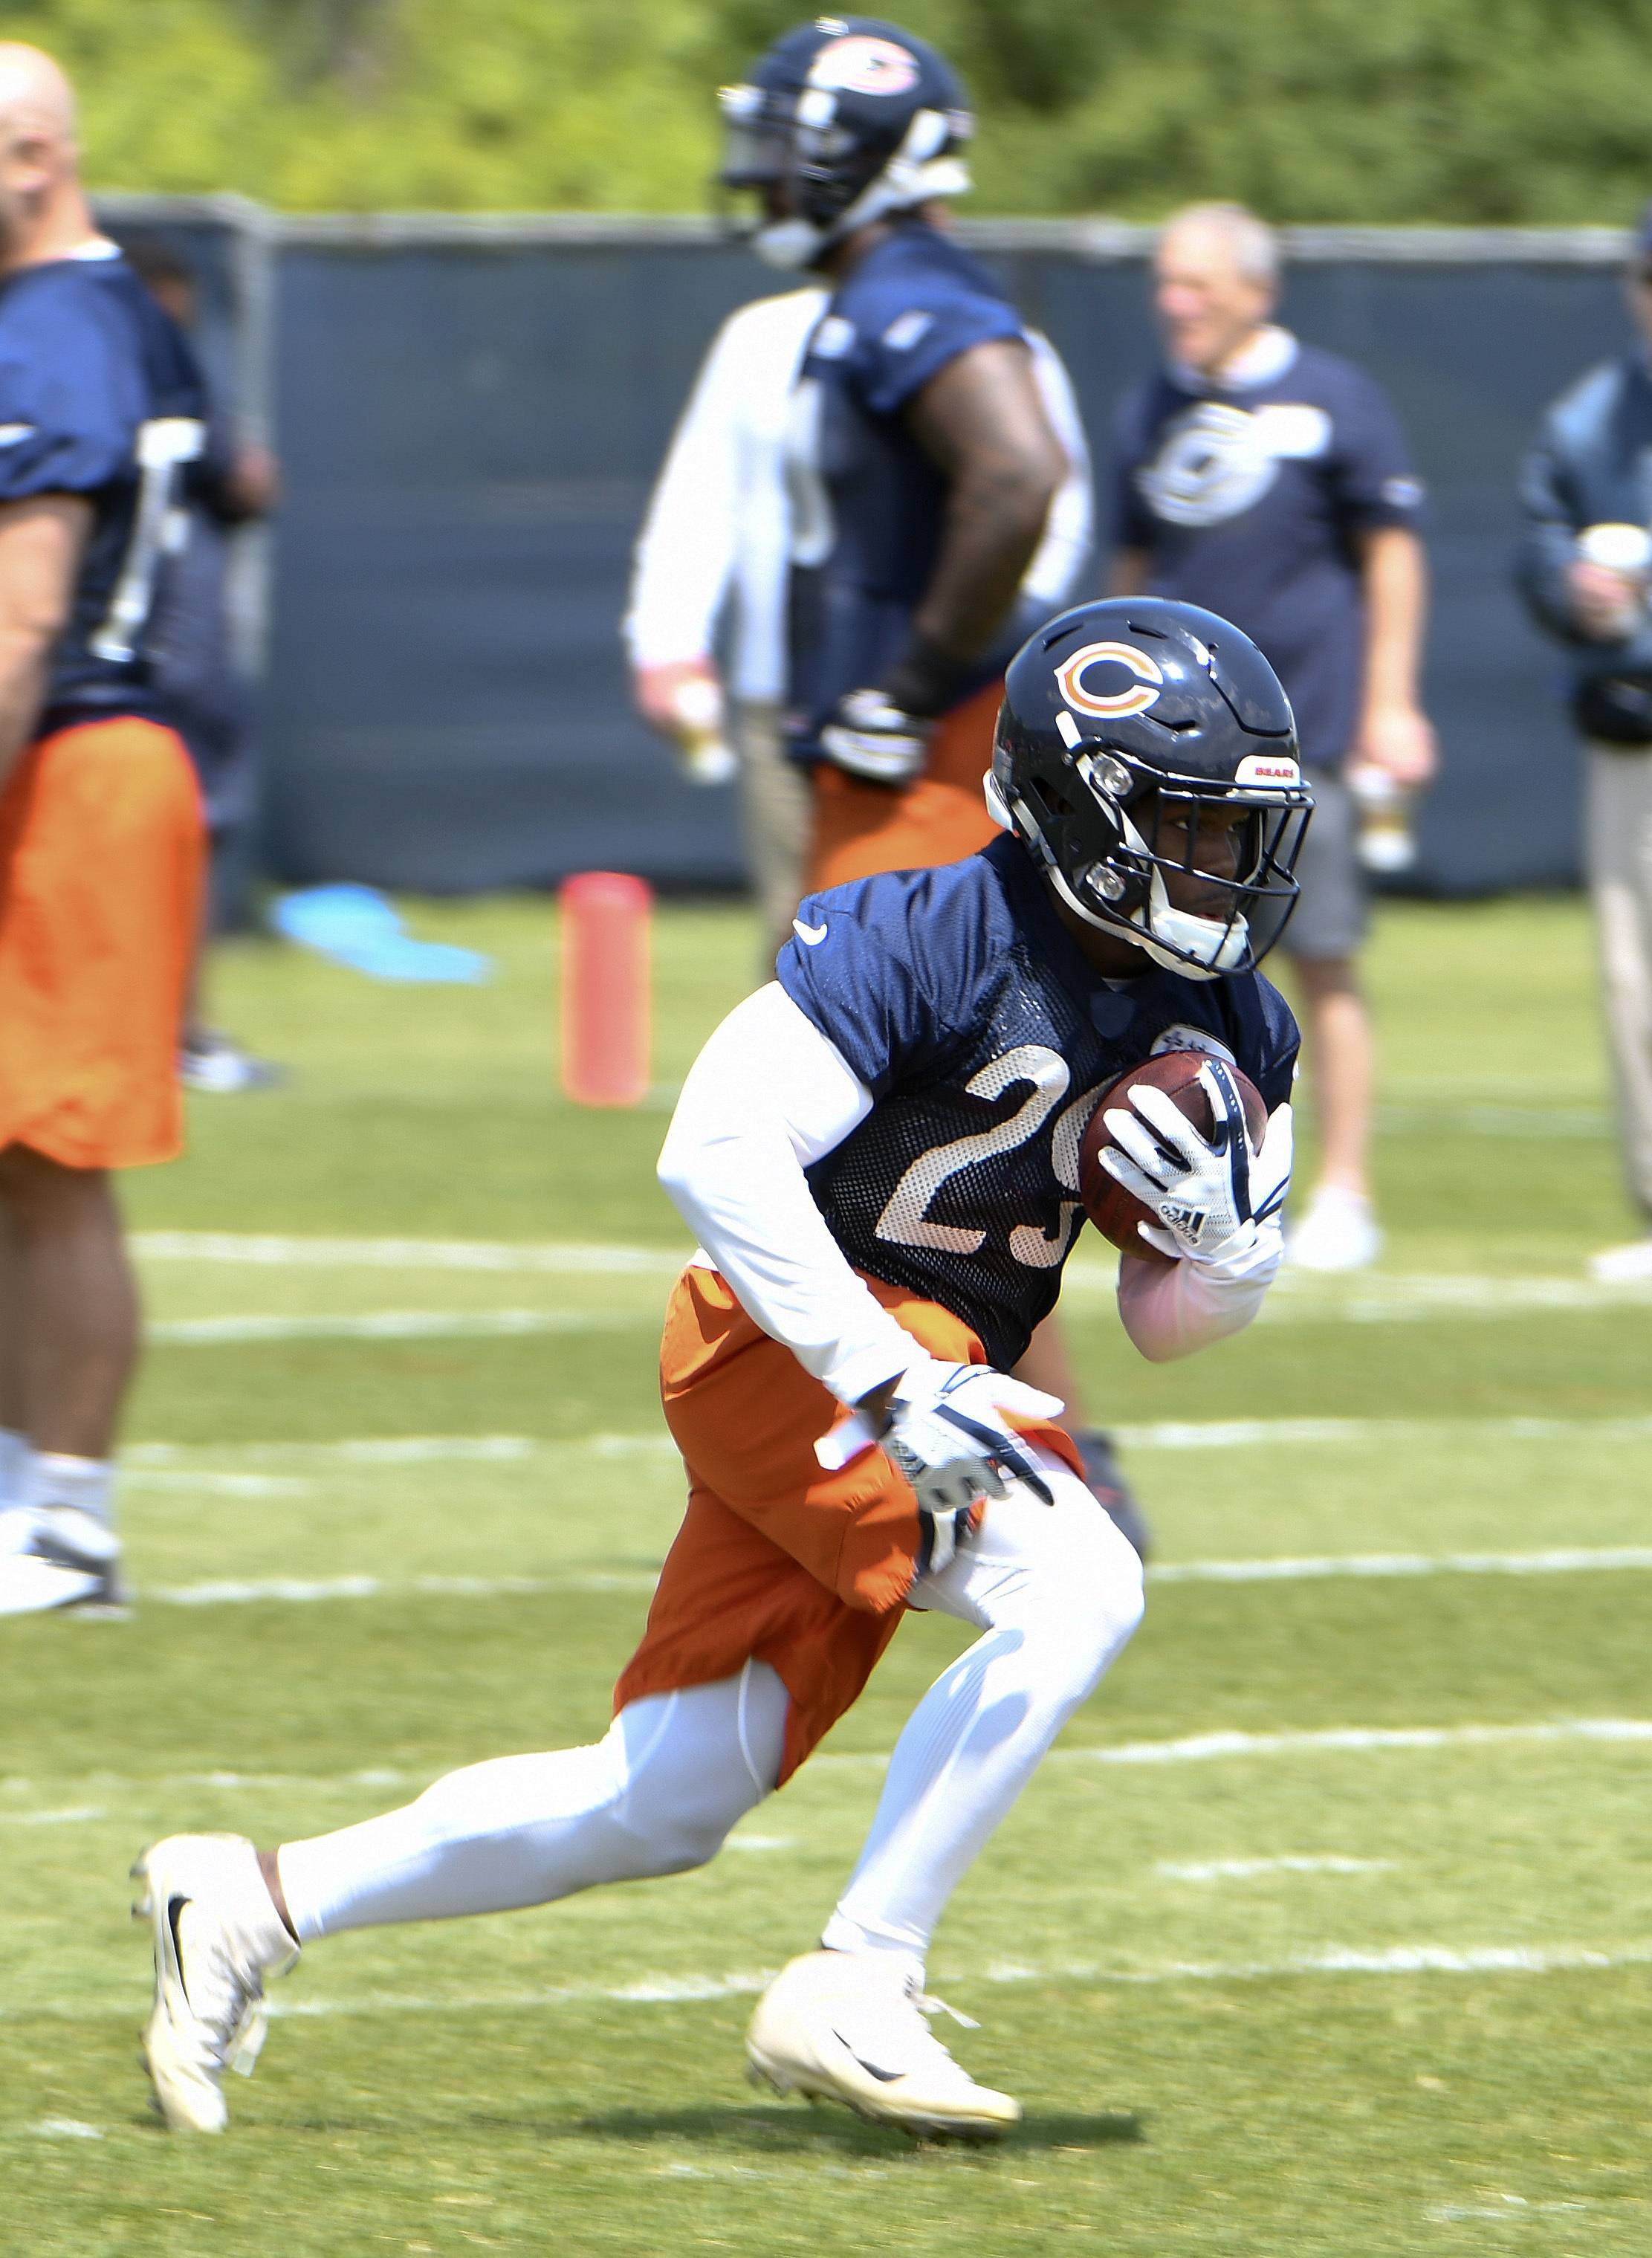 Chicago Bears running back Tarik Cohen says he's excited about the new offense under head coach Matt Nagy.